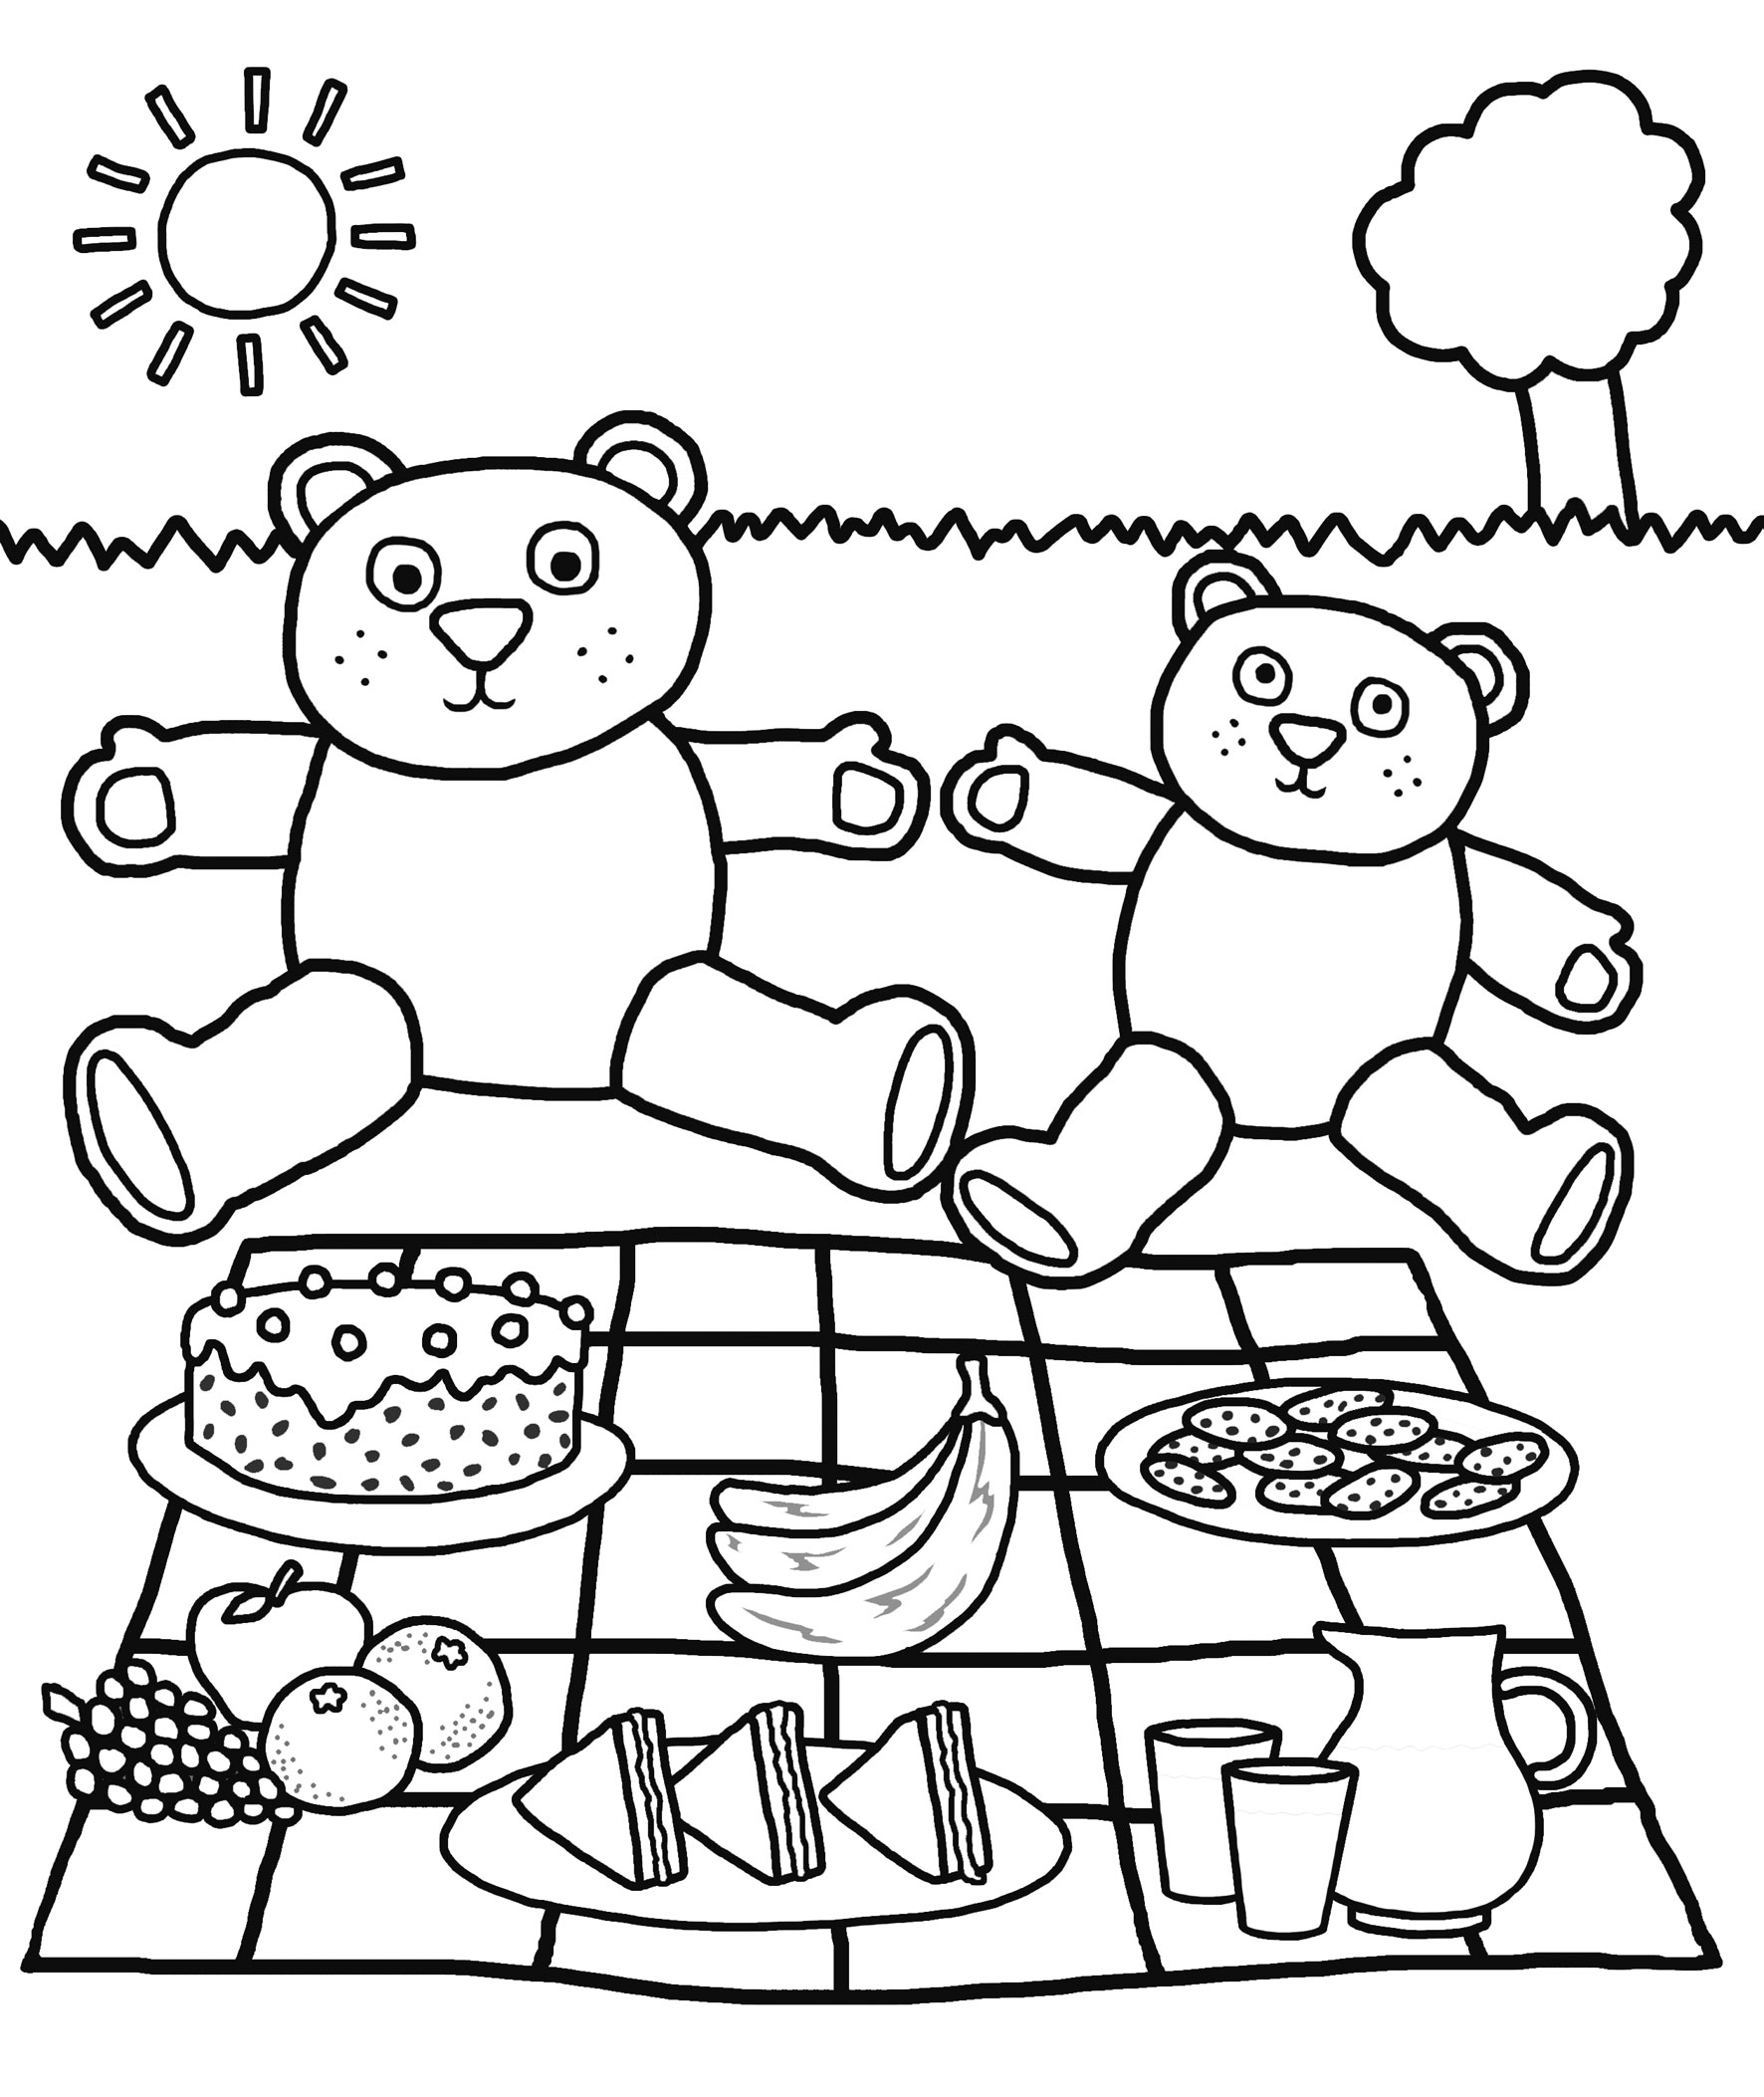 printable coloring pages for preschool - free printable kindergarten coloring pages for kids